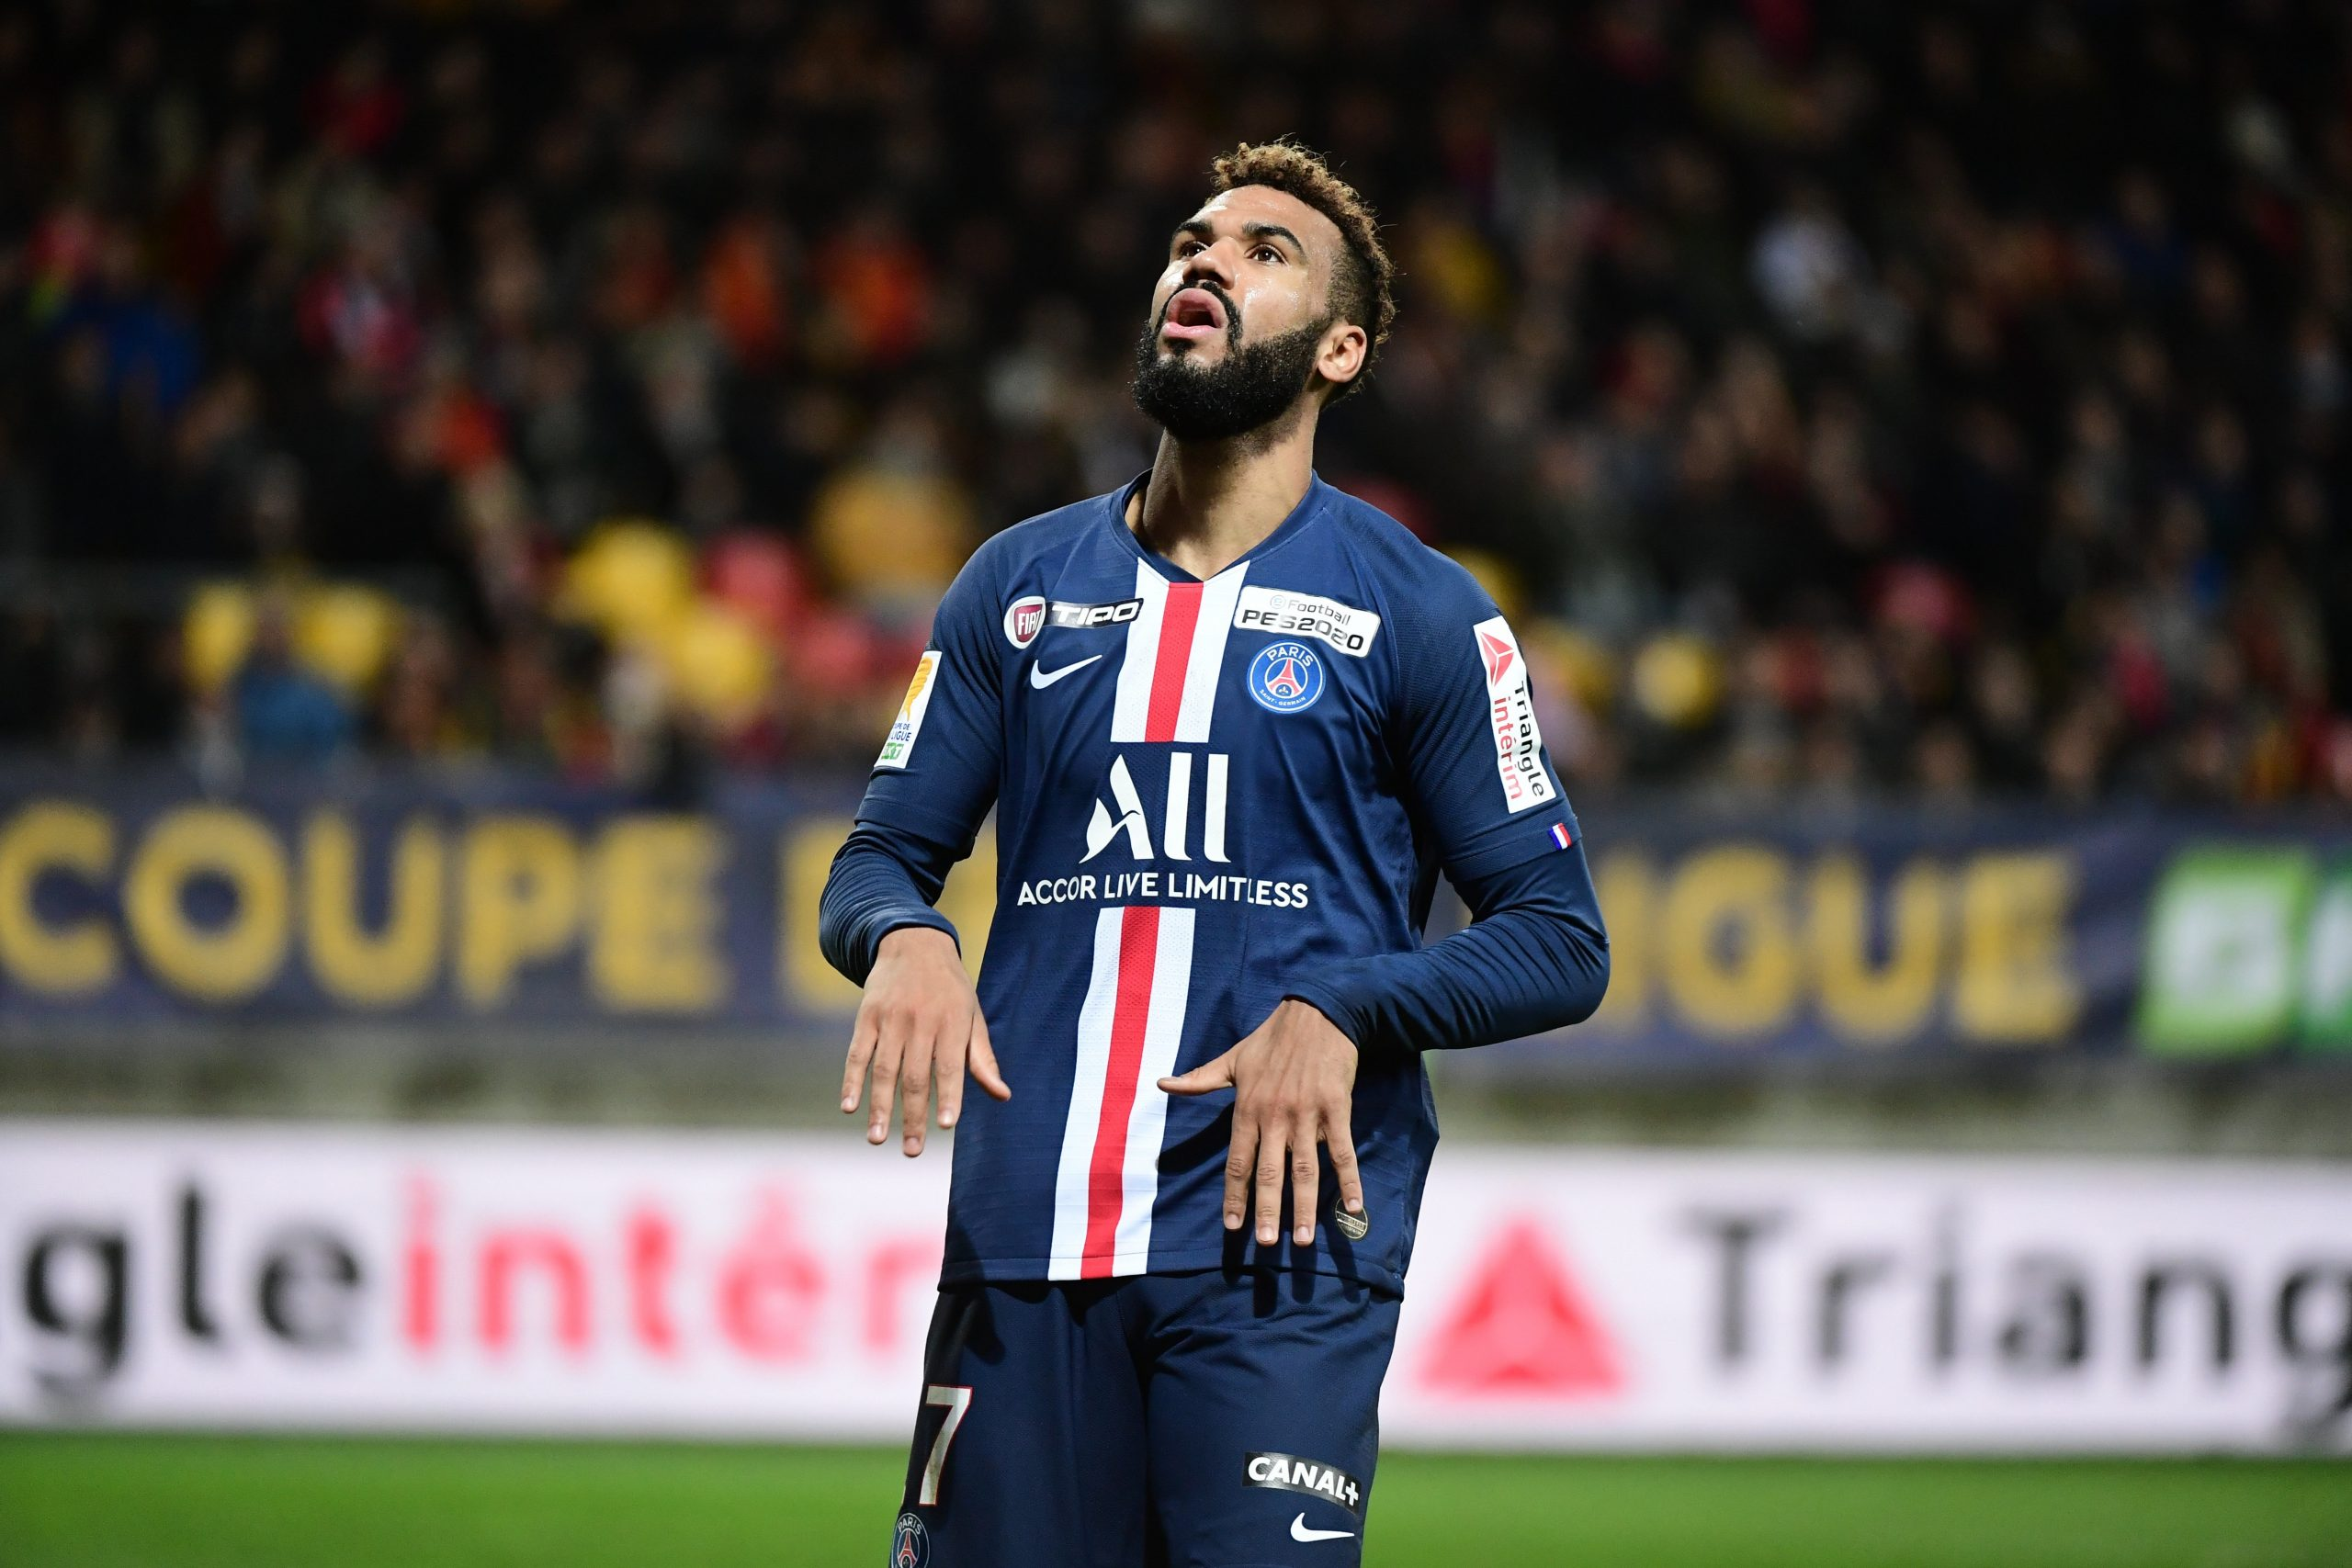 Choupo-Moting dans le top 10 des « exploits individuels » de la Ligue 1 2019-2020